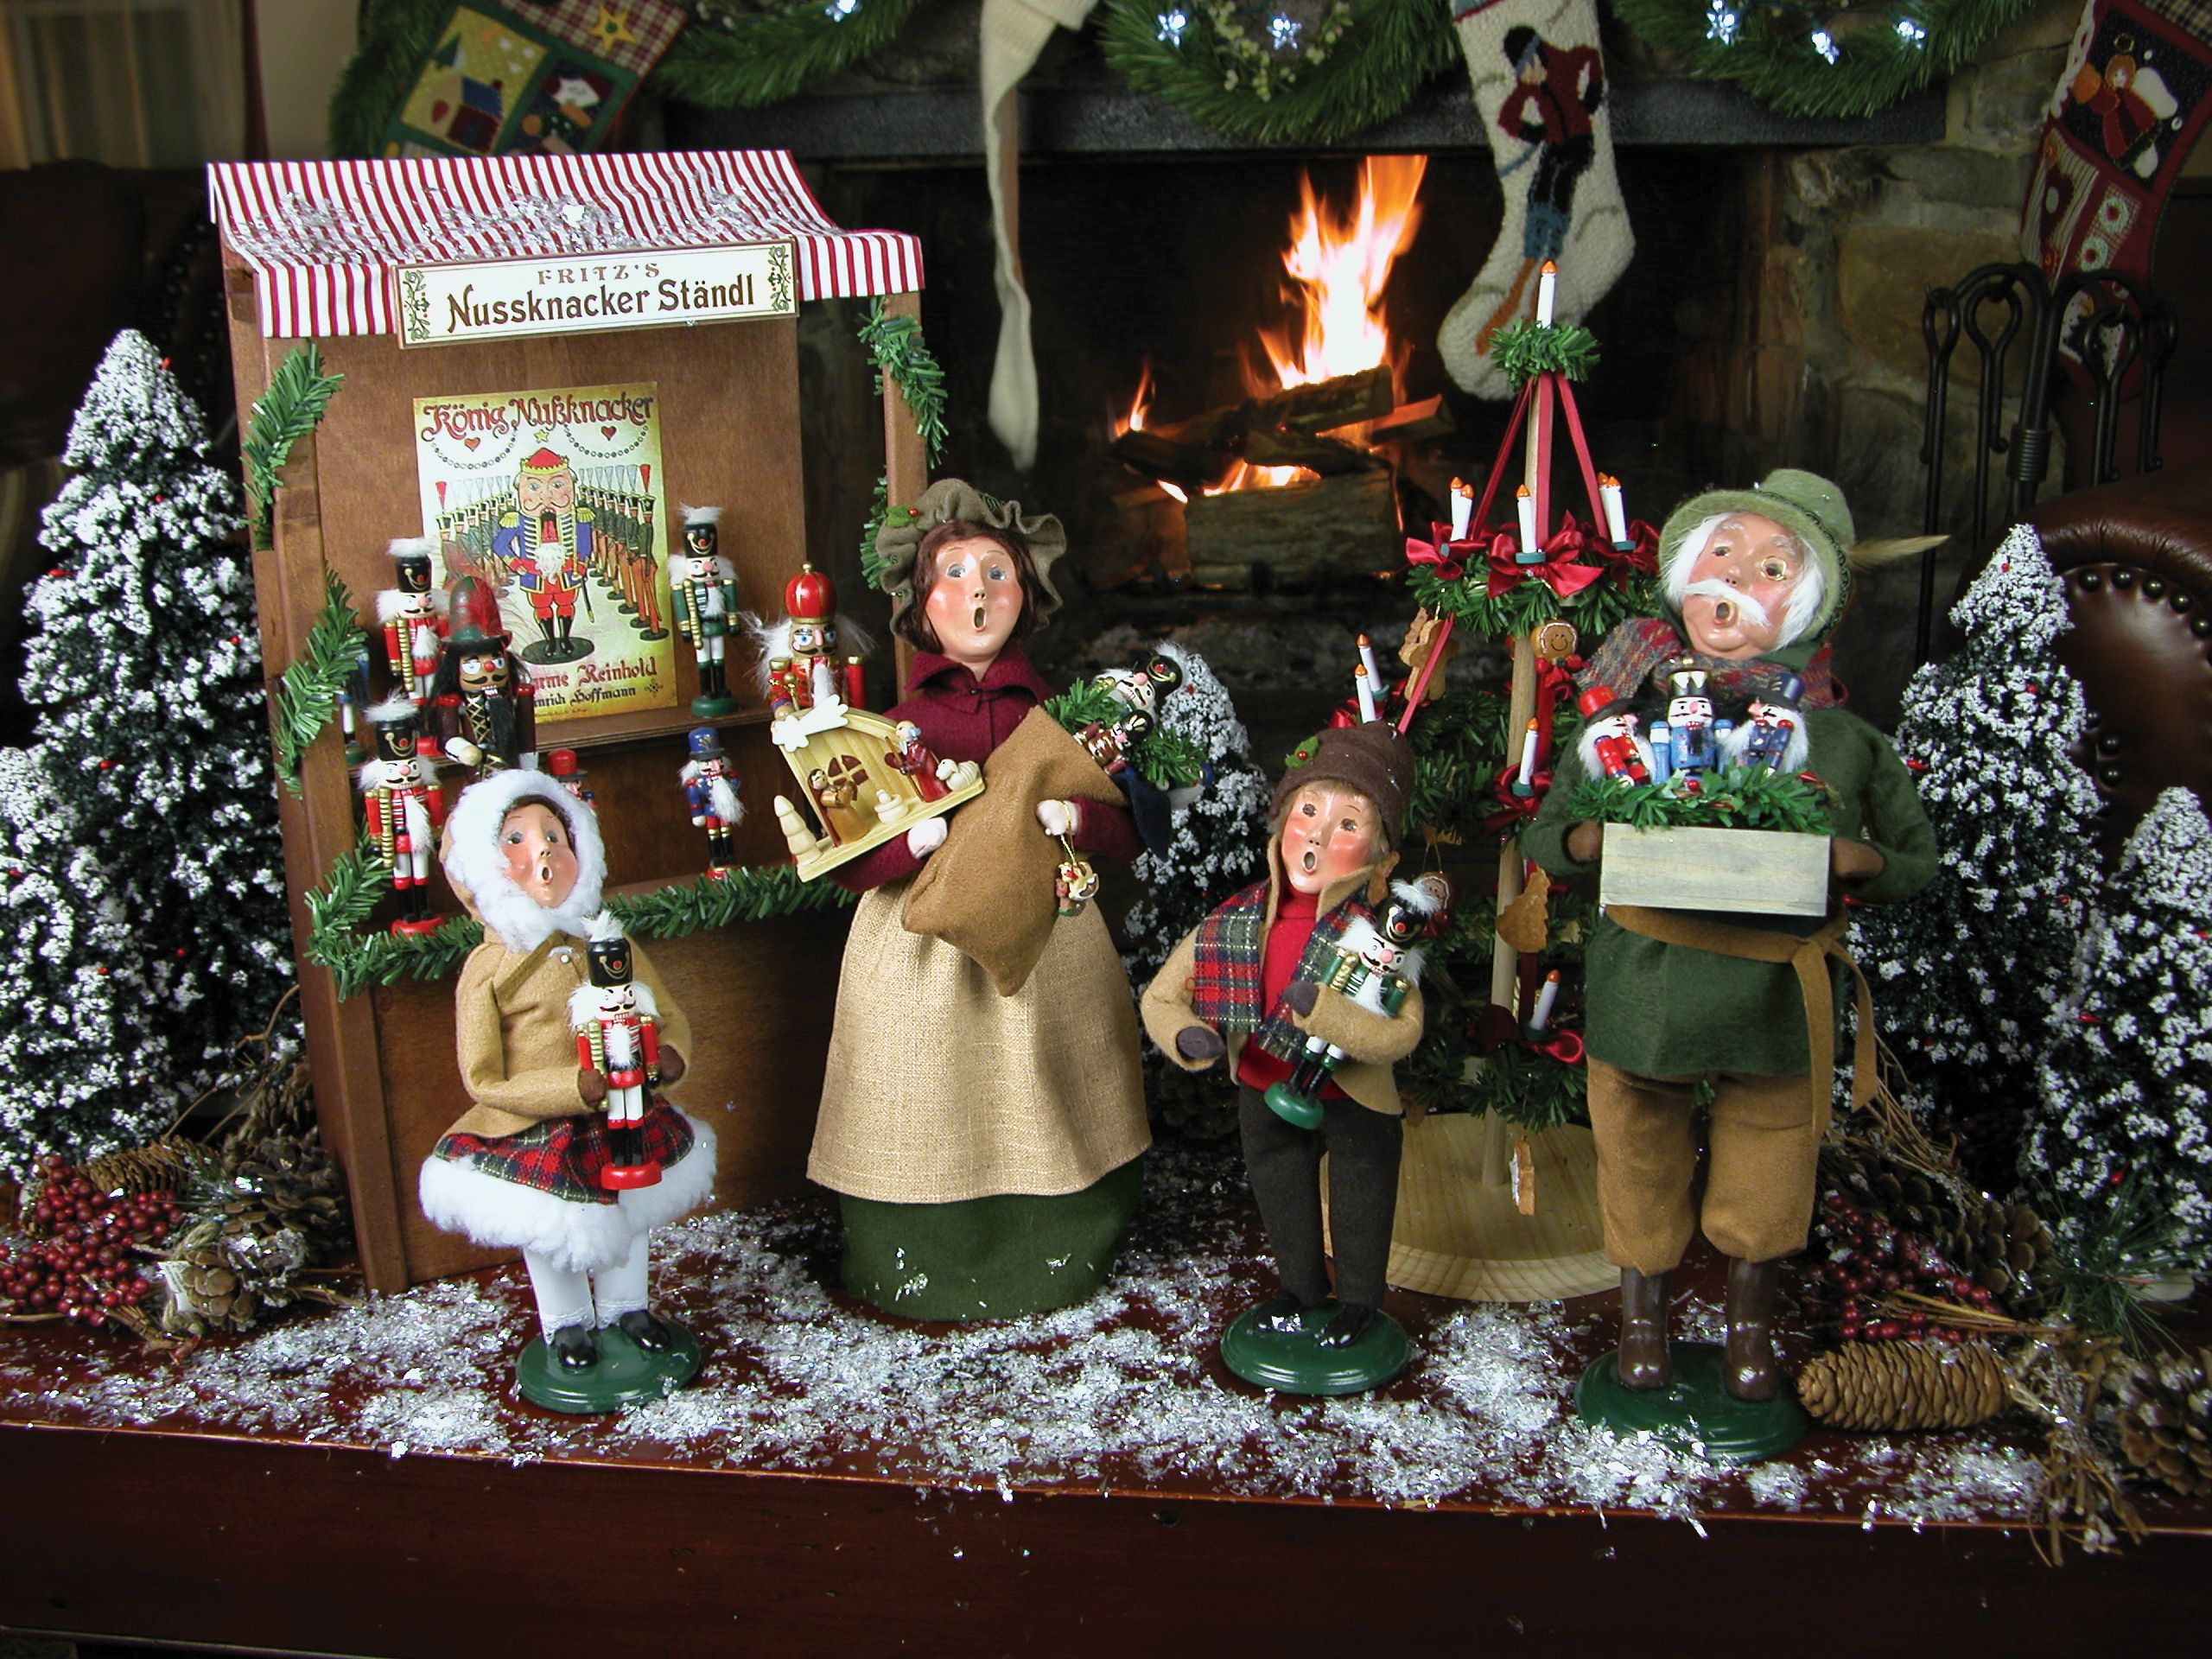 Christmas carolers figurines for sale - Girl Holding Nutcracker Byers Choice Carolers New For 2014 Christmas Market Collection Byers Choice Ltd